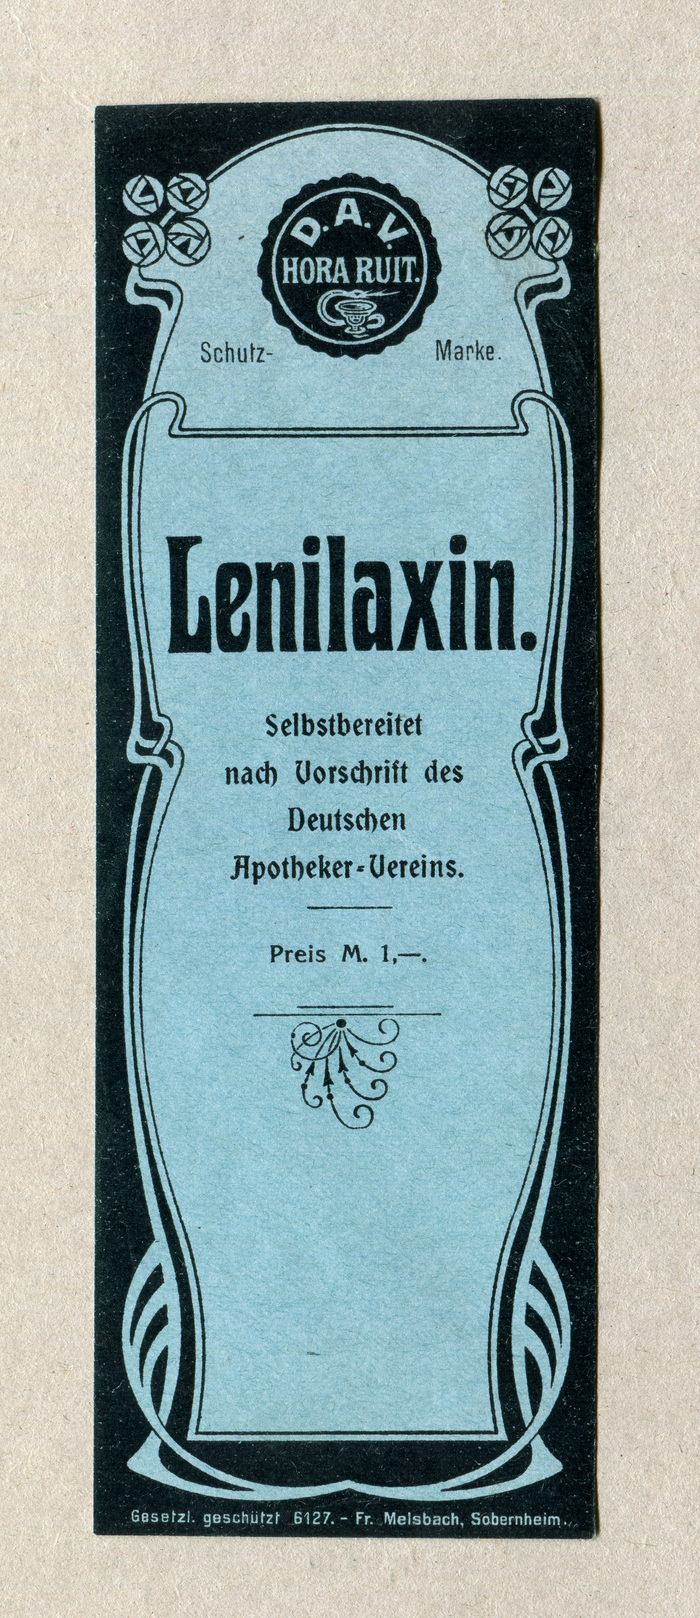 Lenilaxin uses a typeface that was sold by many foundries under various names, incl. Phönix (Poppelbaum, before 1903) and Medea (Flinsch, 1903; later continued by Bauer). The smaller text is in one of the light cuts added by German foundries to their  adaptations, see . The price is in  (1904).